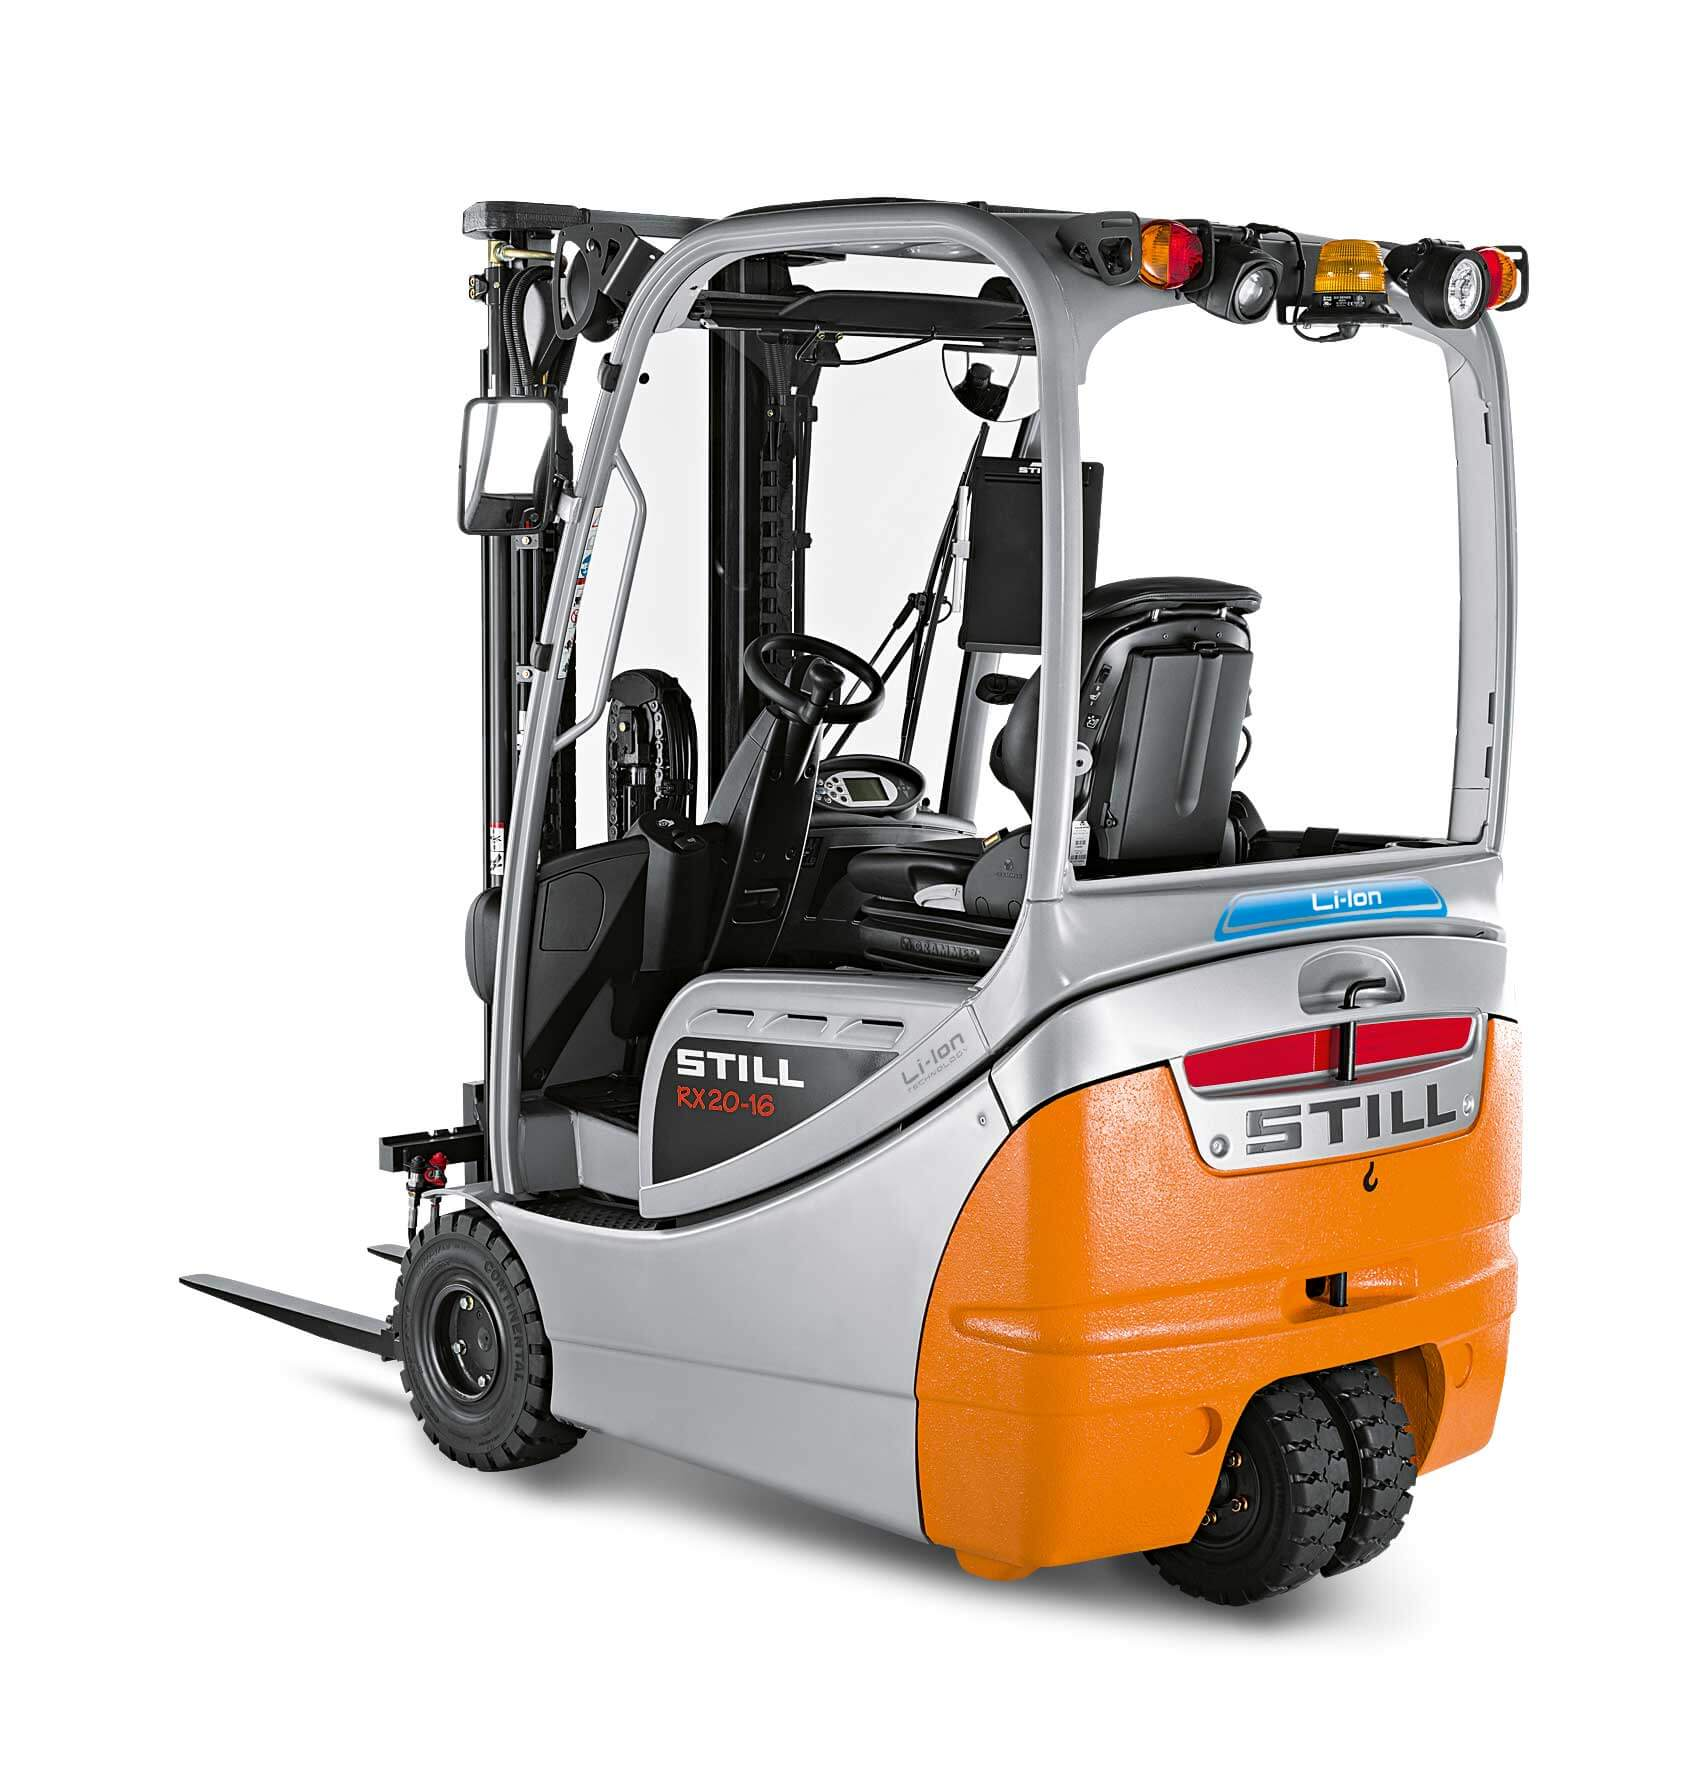 Still rx 20 1 4 2 0 tonne gwent mechanical handling Motorized forklift